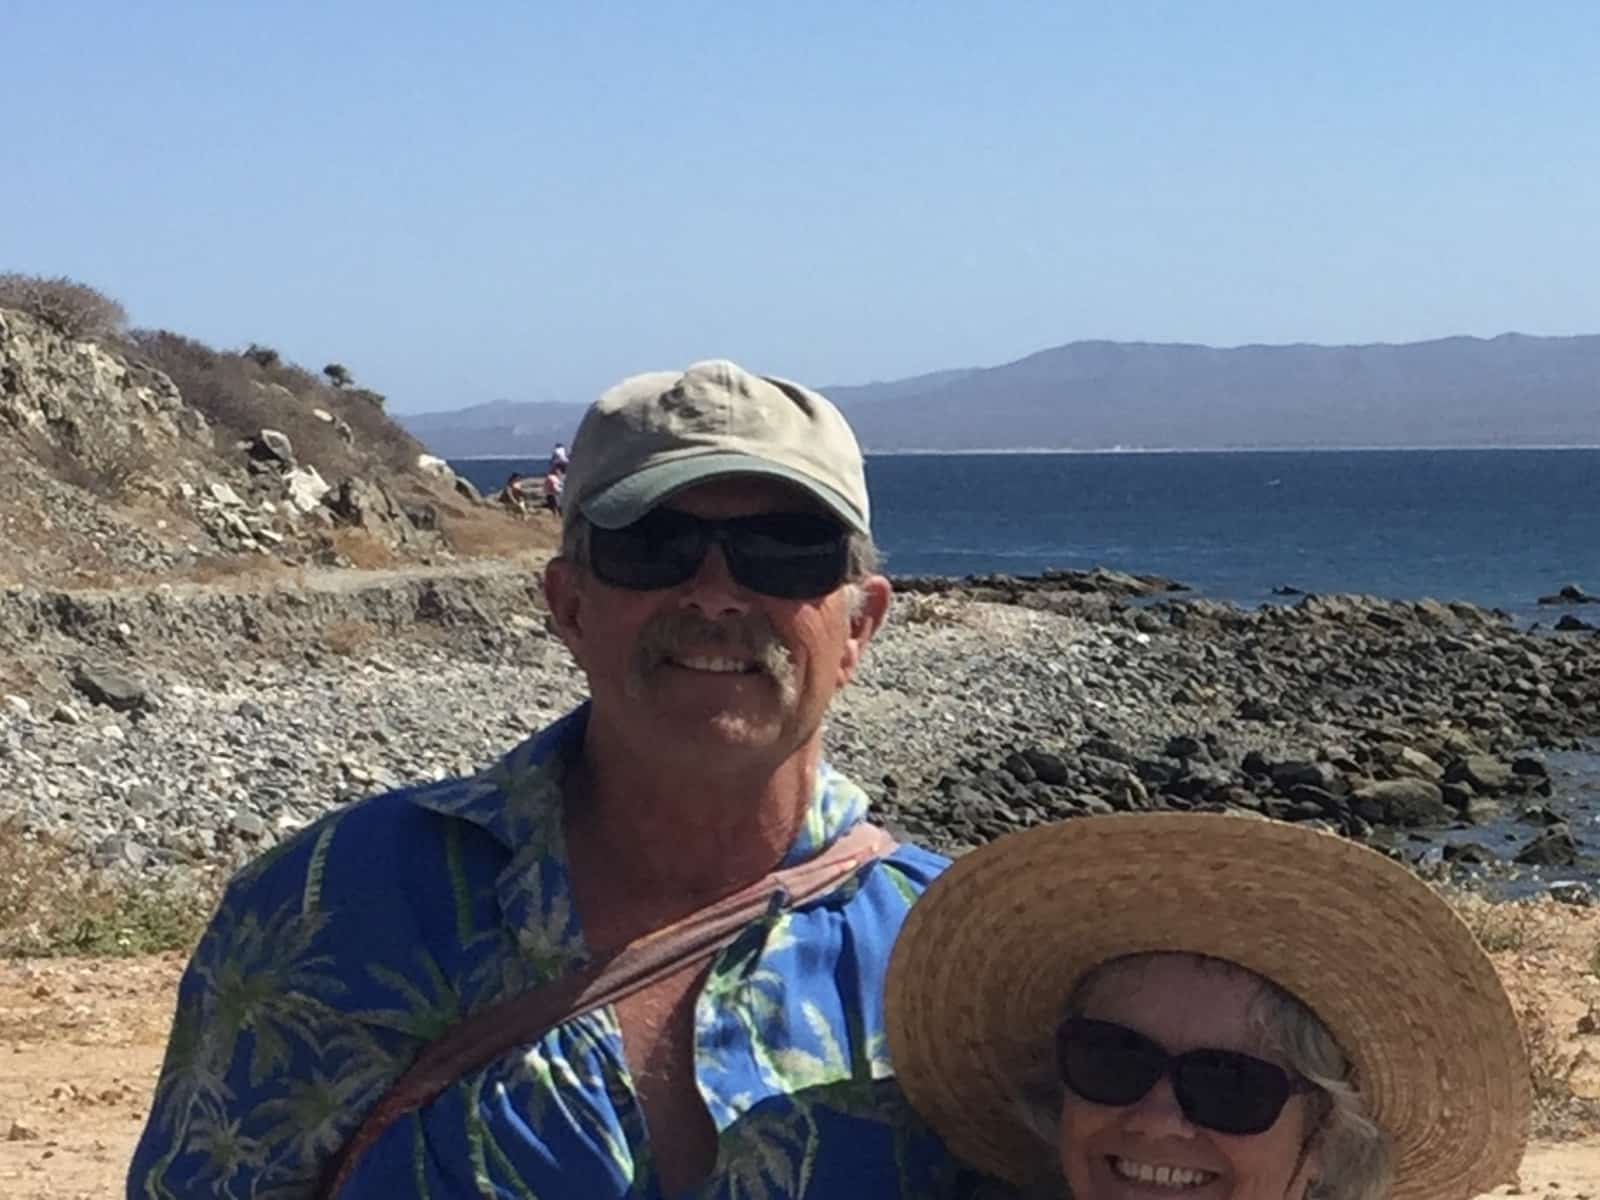 Jeff & janet & Janet from Falls City, Oregon, United States